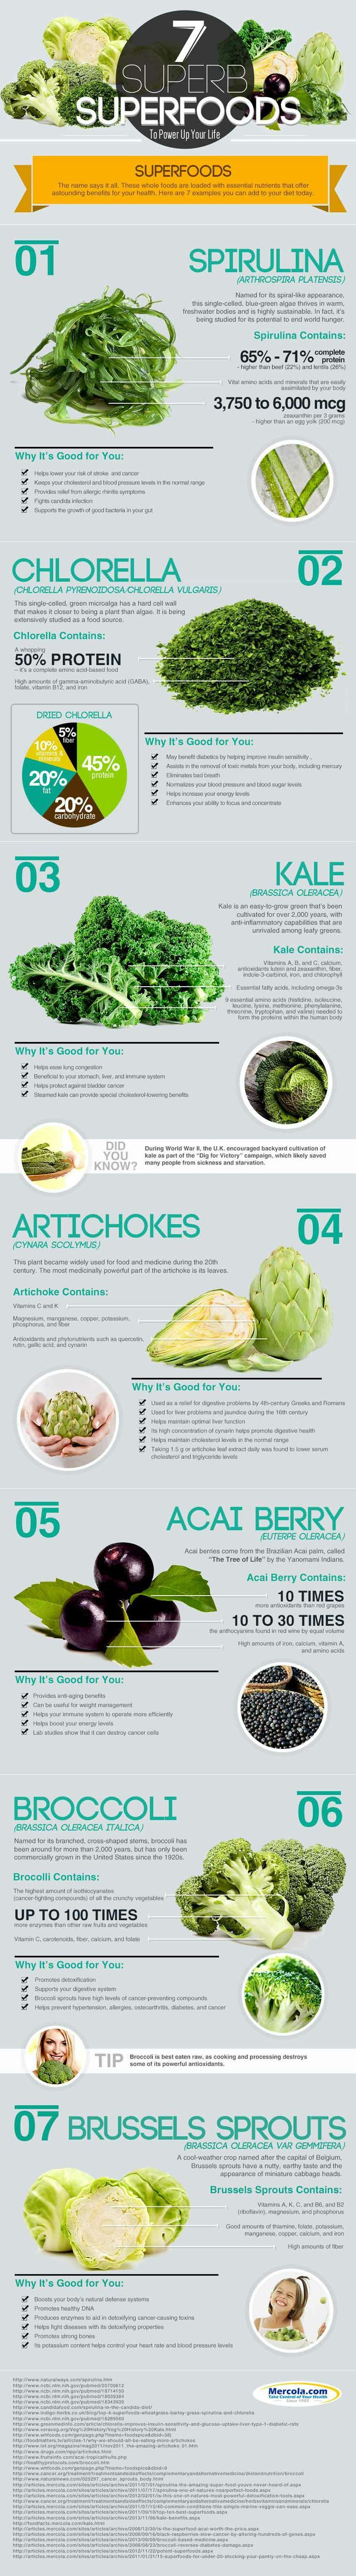 """Check out the """"7 Superb Superfoods to Power Up Your Life"""" infographic and discover some of the delicious secrets to optimal health and longevity."""